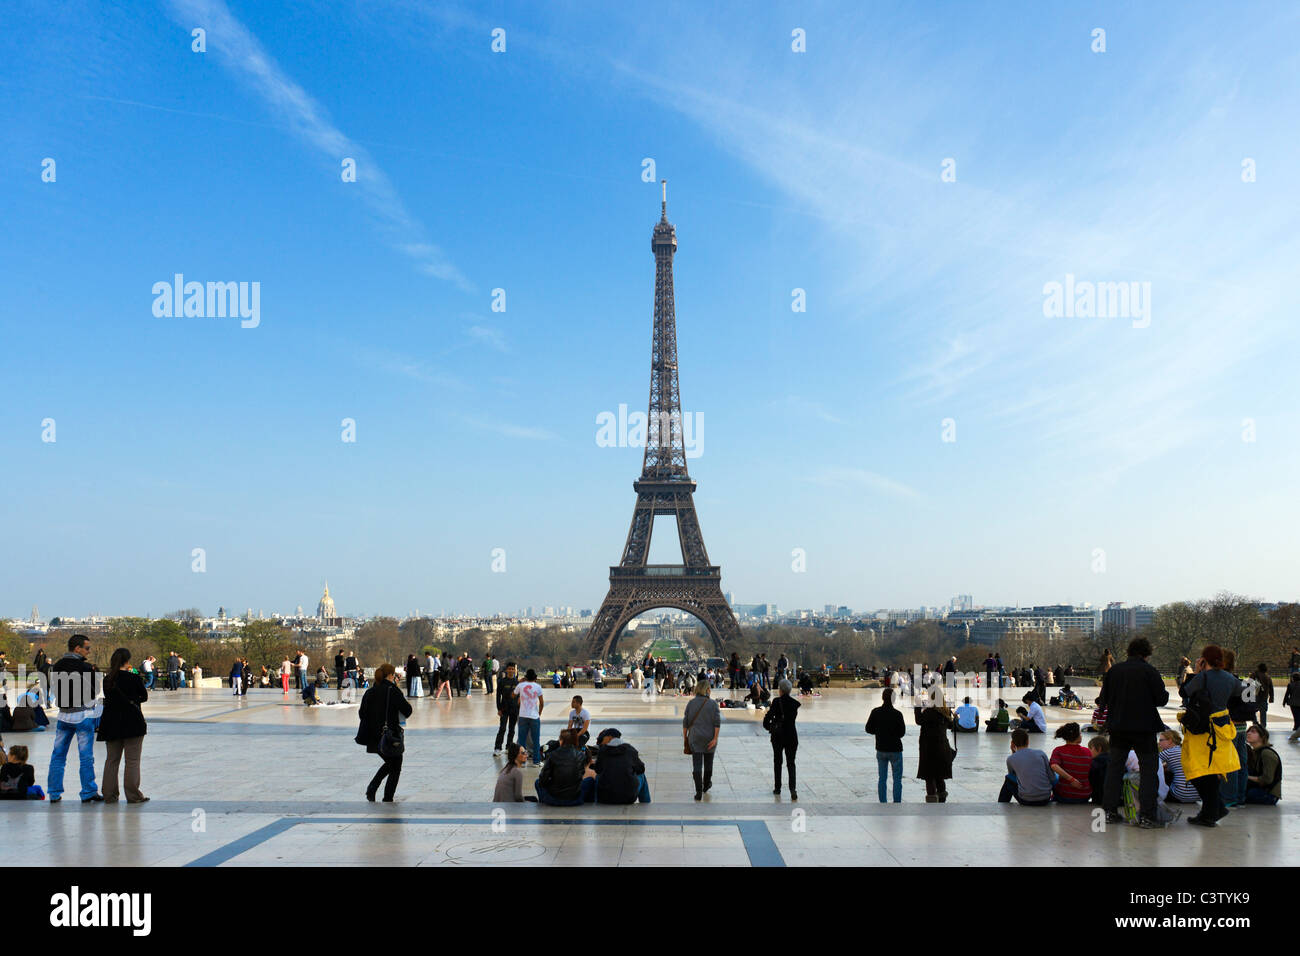 Tourists viewing the Eiffel Tower from the Trocadero in the late afternoon, Paris, France - Stock Image